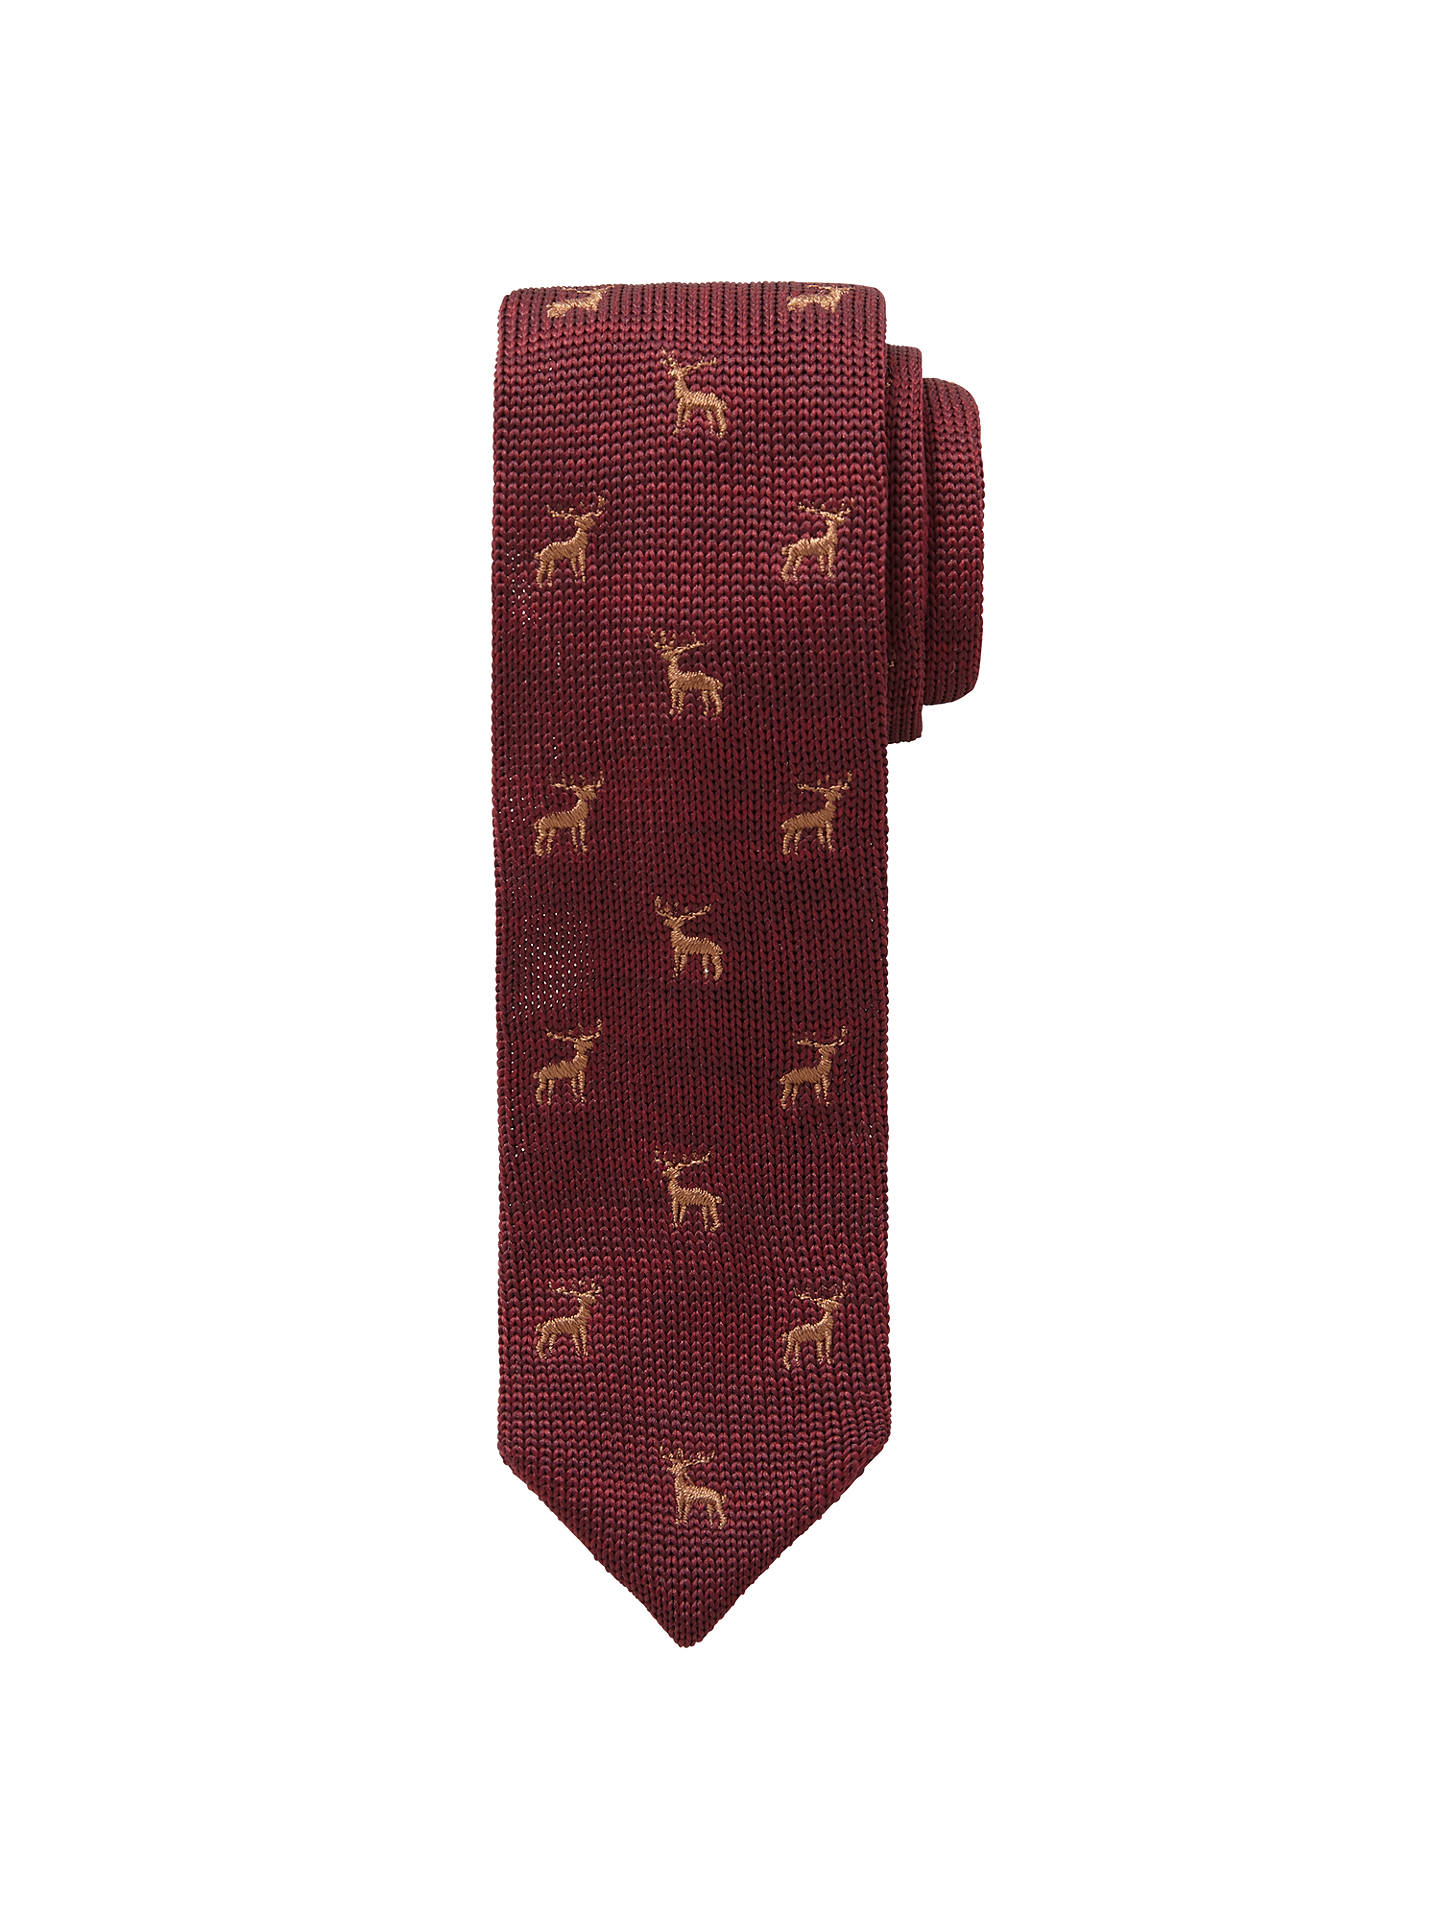 66703e24613e Buy John Lewis Heirloom Collection Boys' Stag Knitted Tie, Burgundy, S/M ...